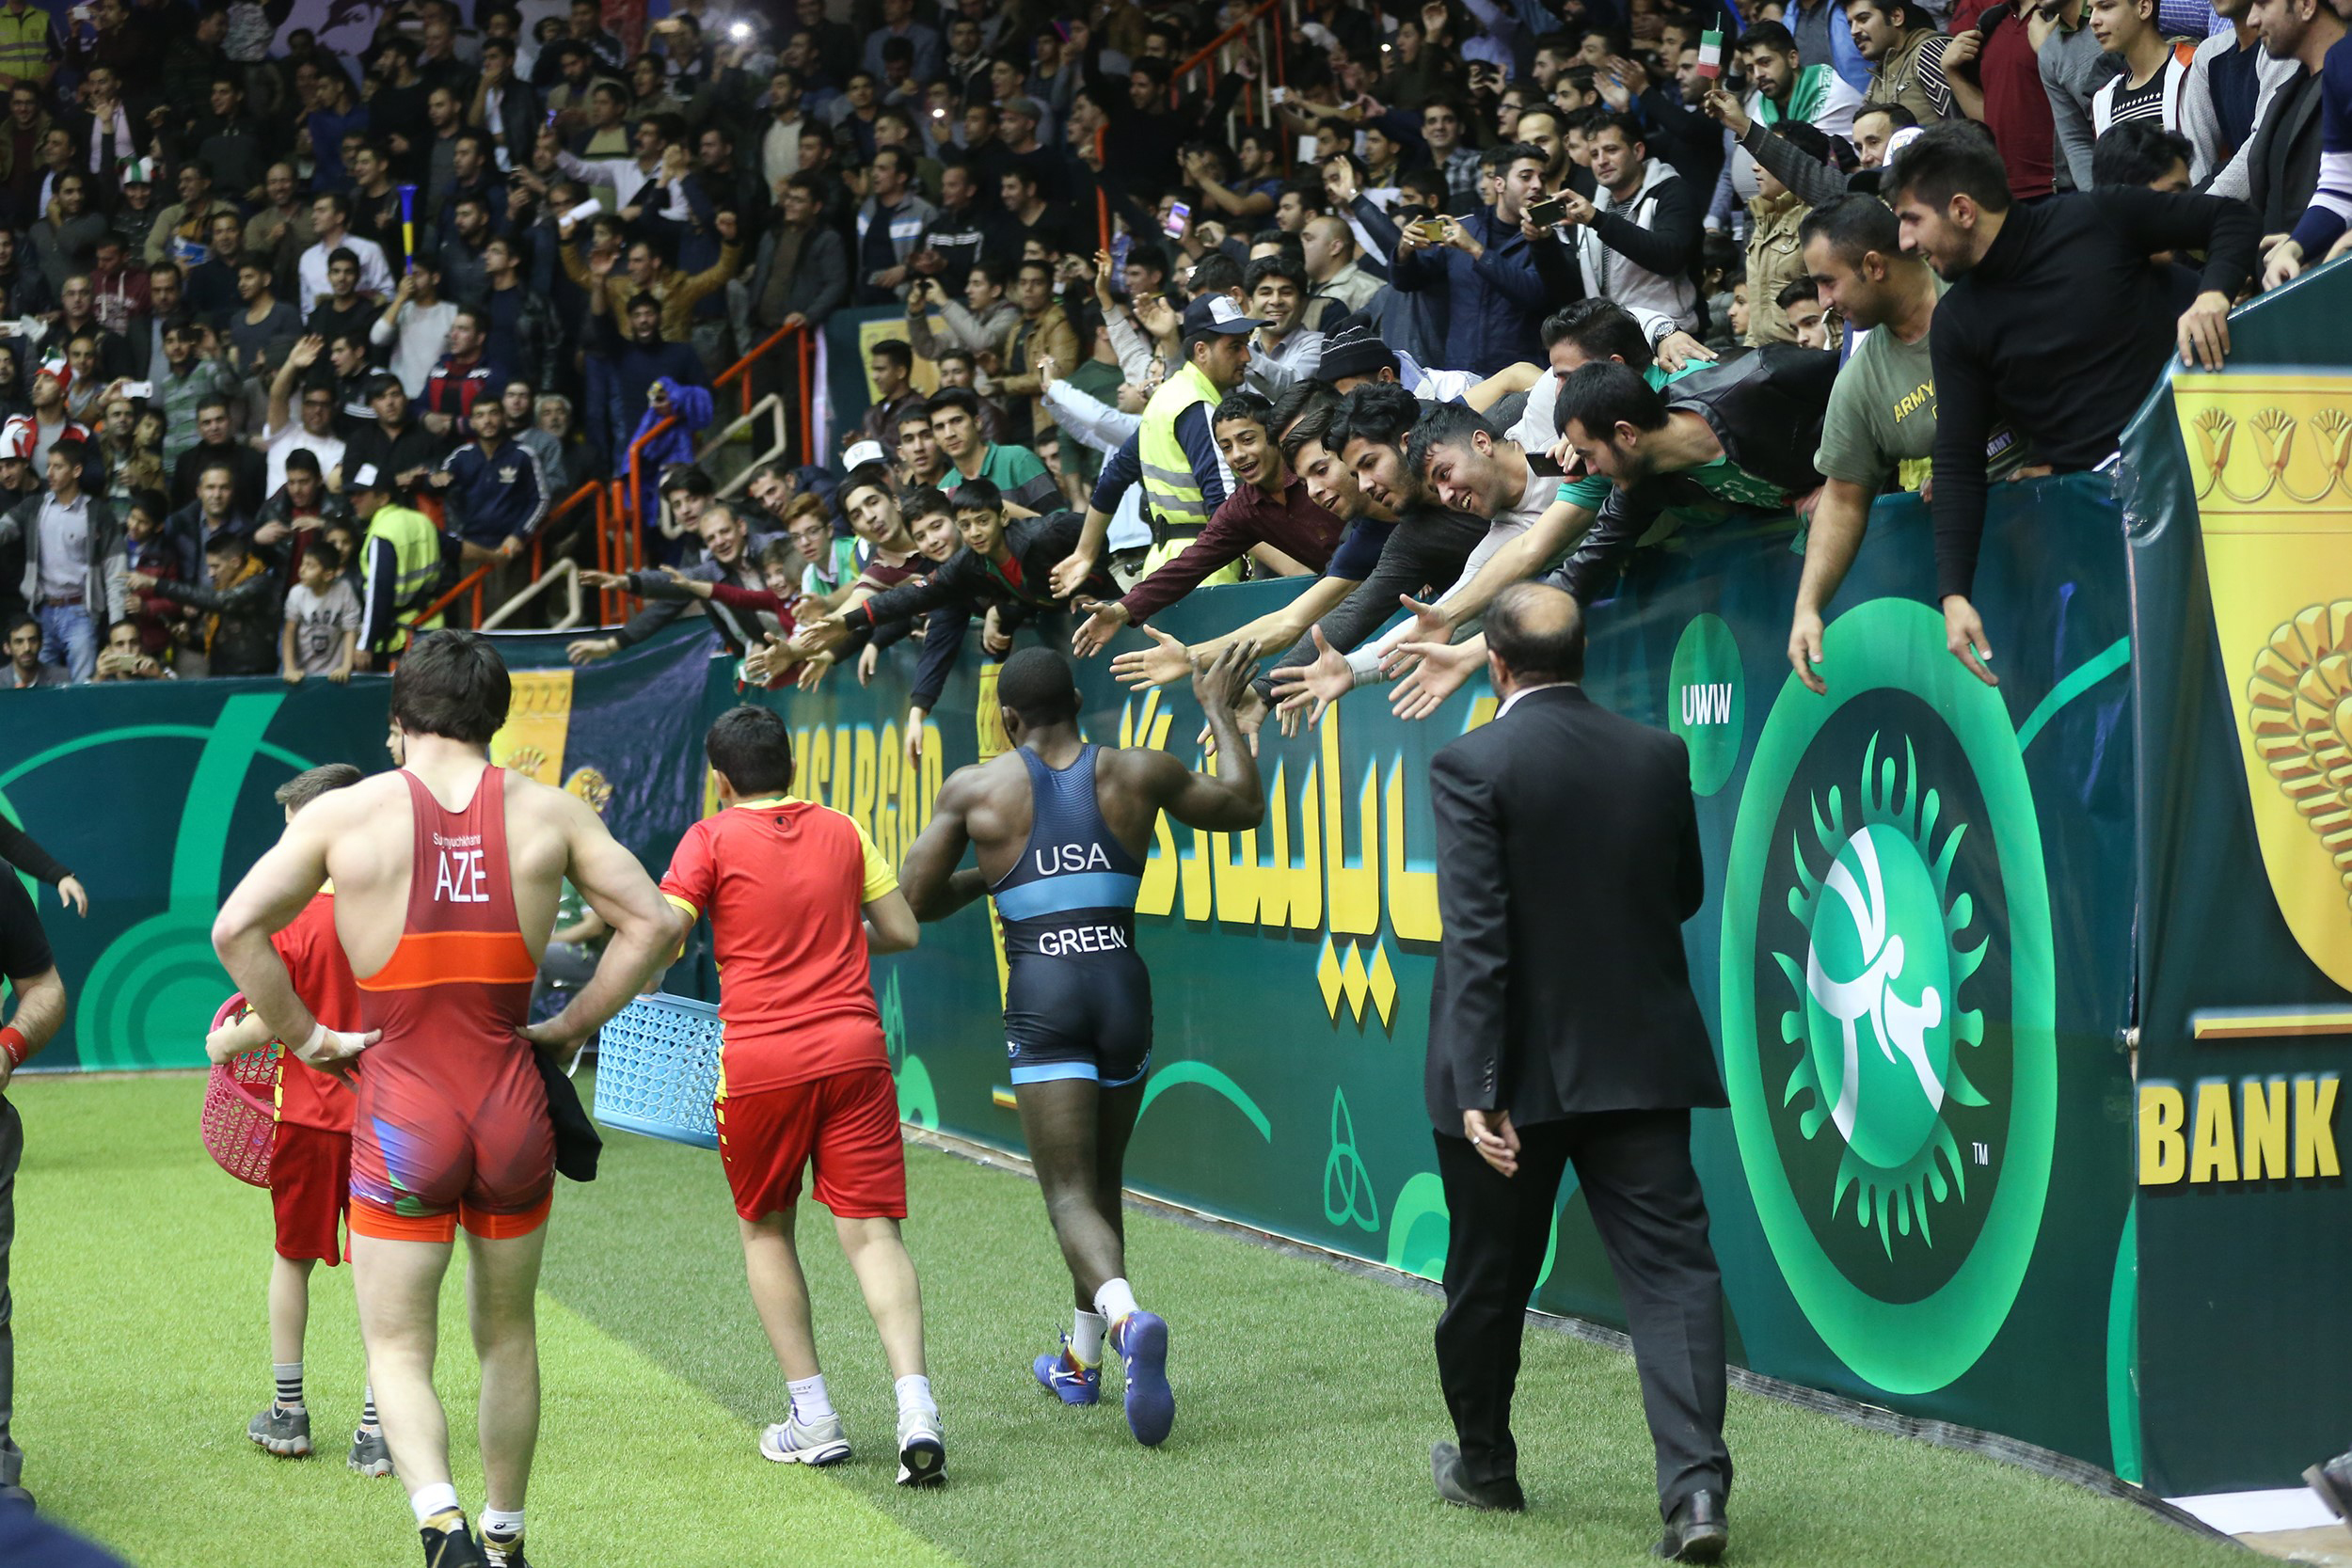 James Malcolm Green of Team USA and David Suynyuchkhanov of Azerbaijan walk after their match at the Freestyle World Cup in 74 kg at Imam Khomeini Sports Venue in Kermanshah, Iran, on Feb. 17, 2017.